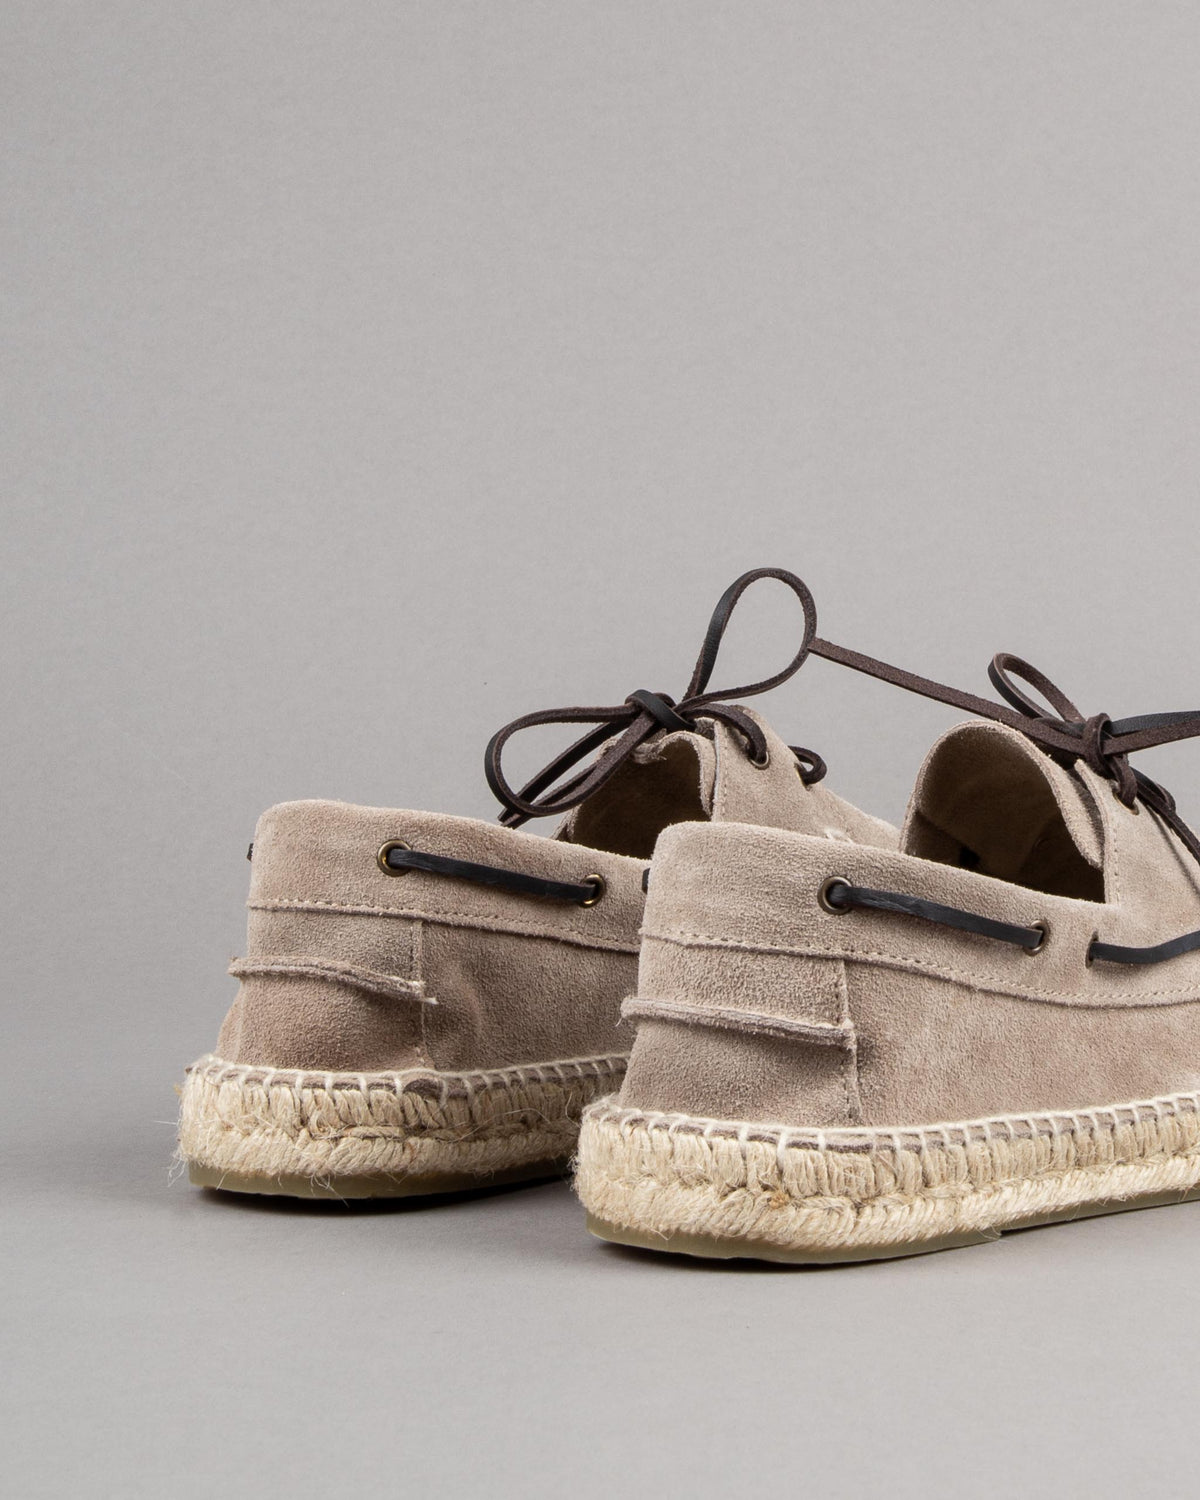 'Hamptons' Boat Shoes